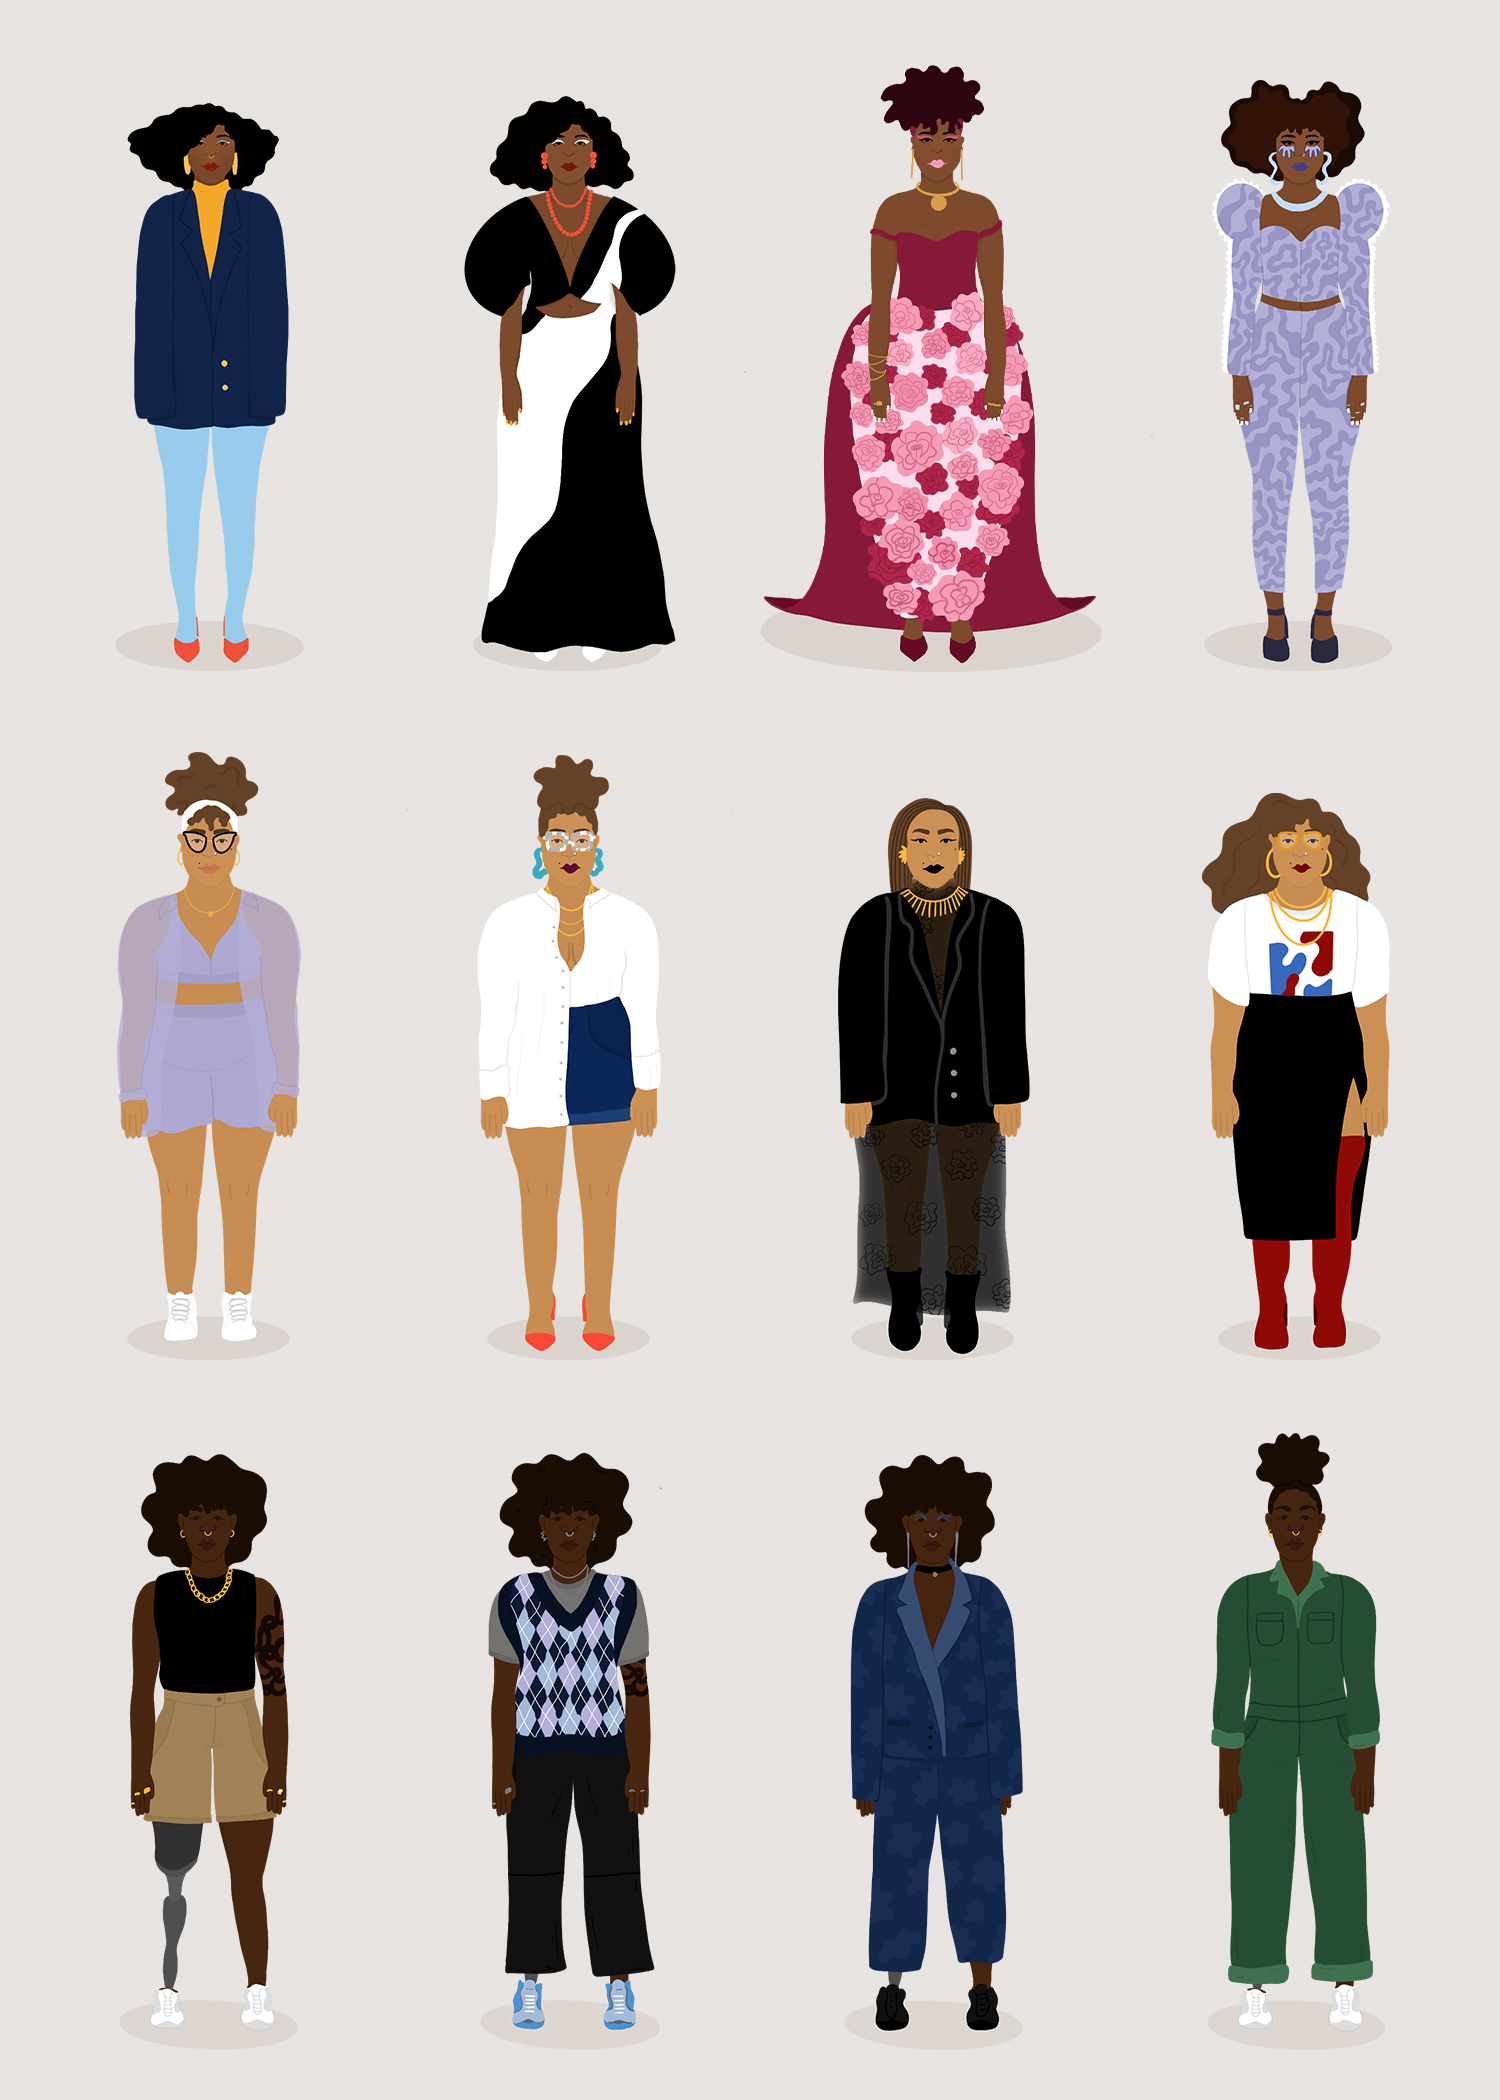 12 characters in 4 columns on a beige background.